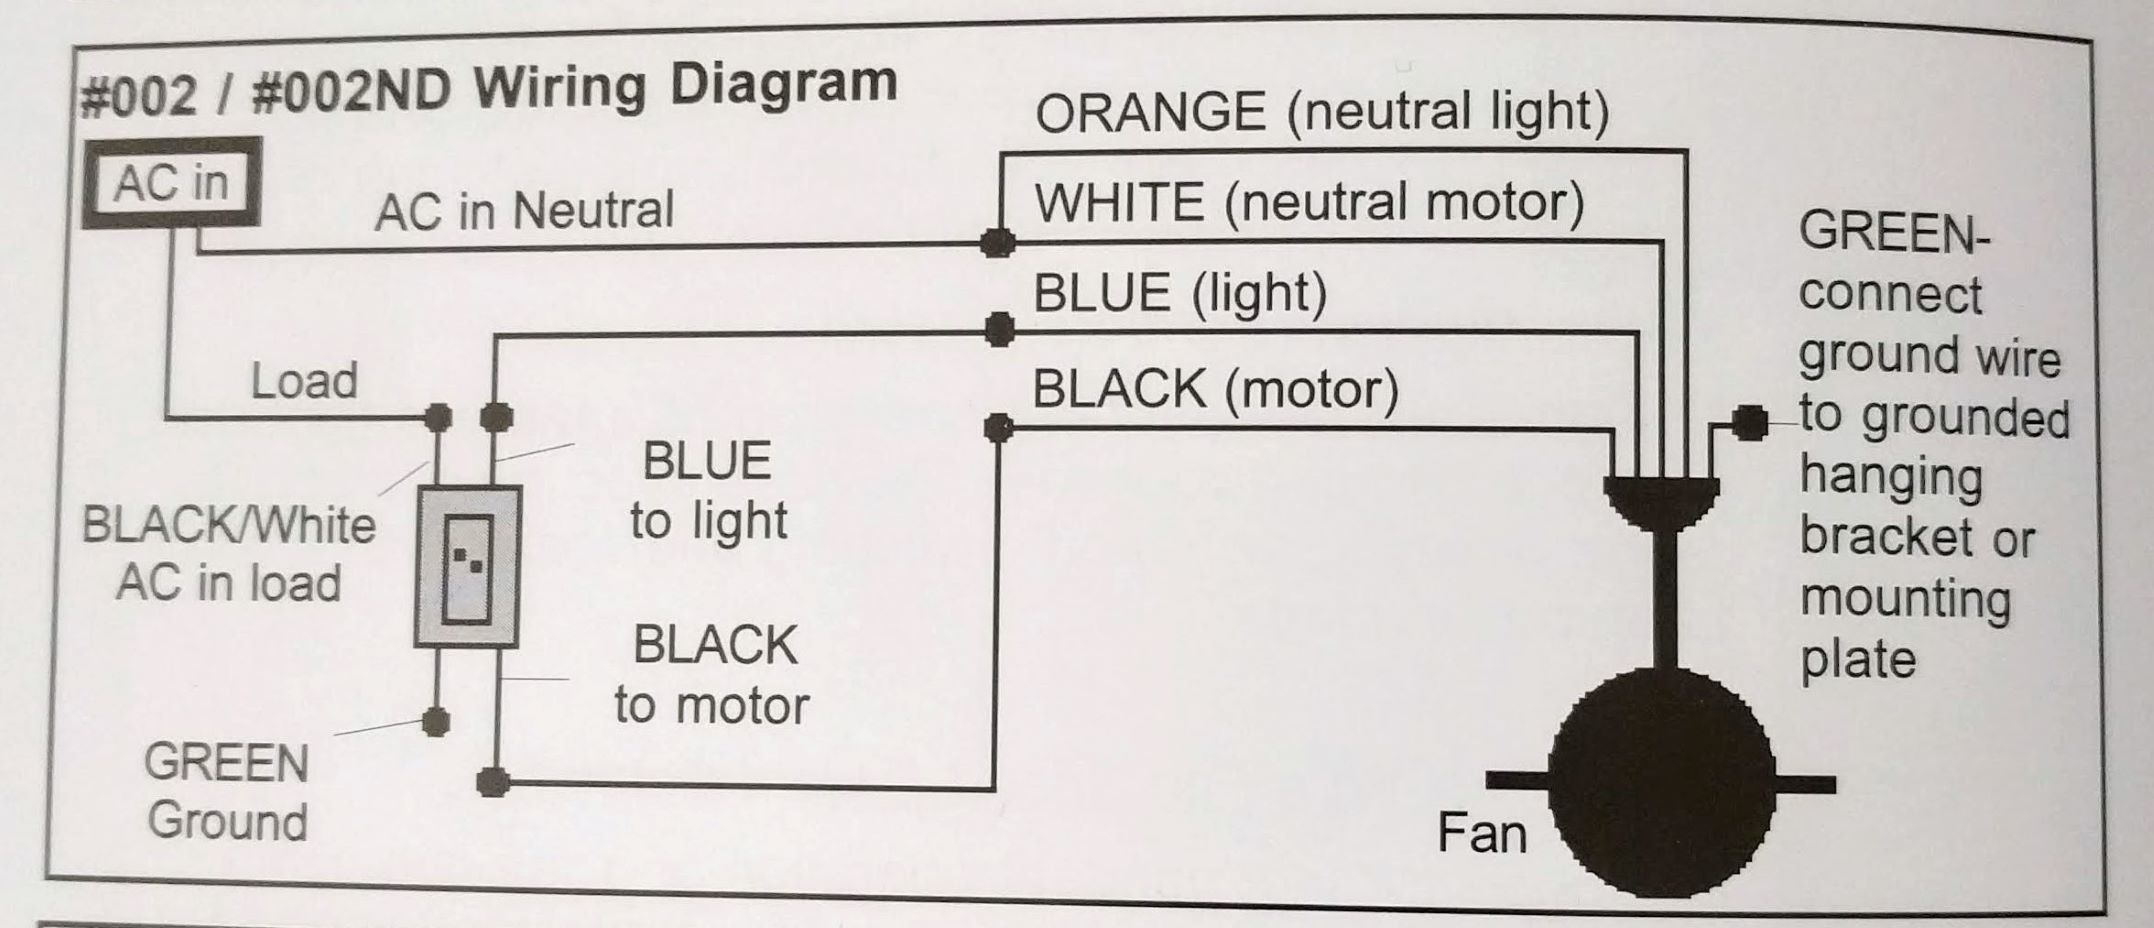 Wiring A Ceiling Fan With Black, White, Red, Green In